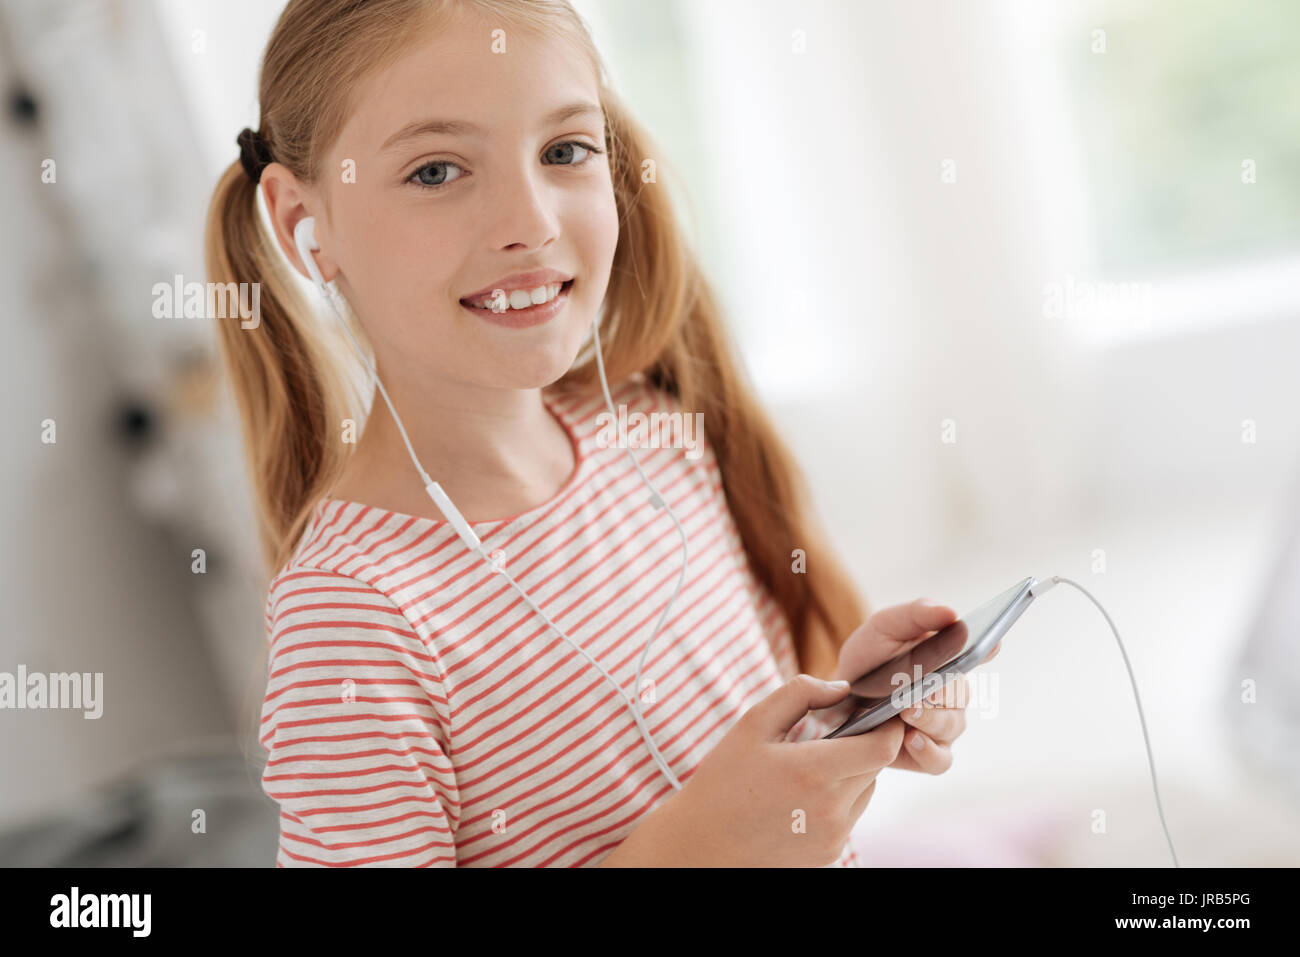 Cute girl with ponytails listening to music - Stock Image